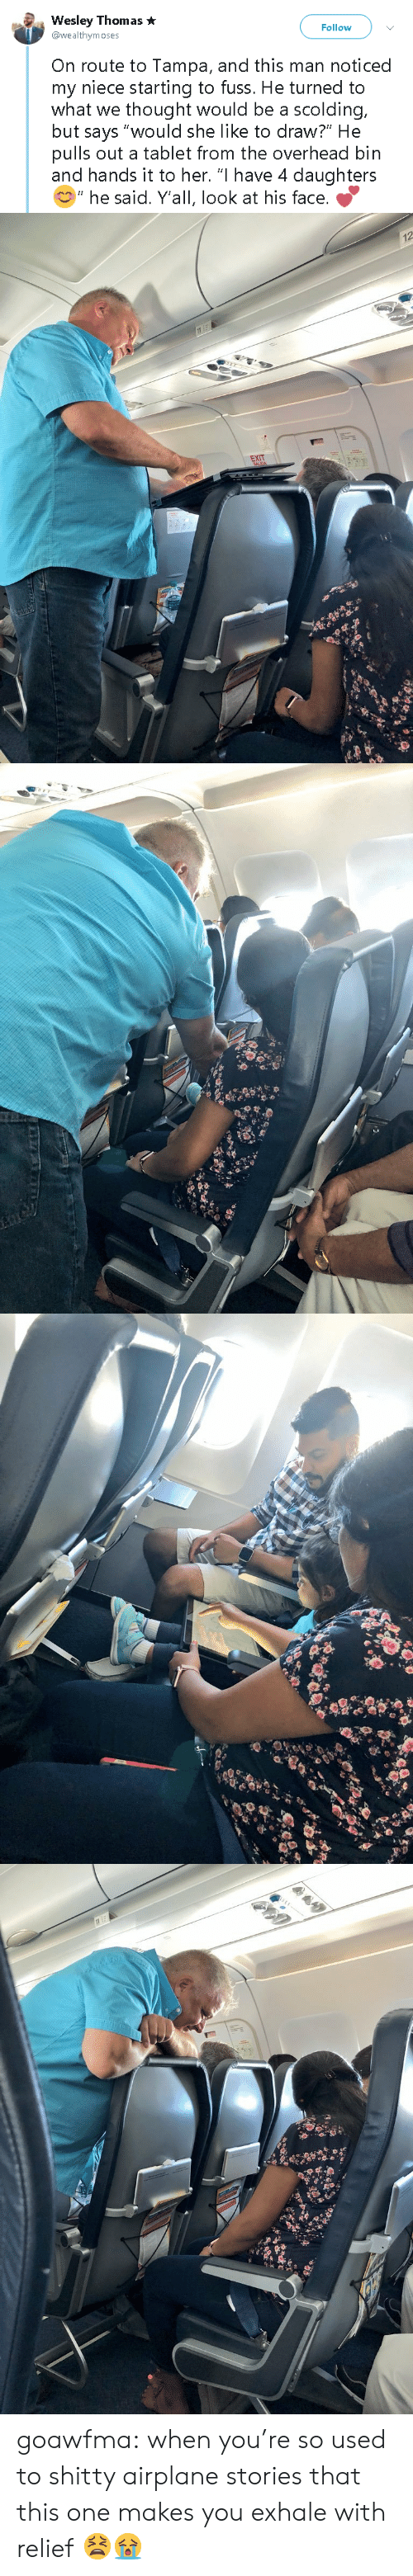 """Tablet, Tumblr, and Airplane: Wesley Thomas  @wealthymoses  Follow  On route to Tampa, and this man noticed  my niece starting to fuss. He turned to  what we thought would be a scolding,  but says """"would she like to draw?"""" He  pulls out a tablet from the overhead bin  and hands it to her. """"I have 4 daughters  """" he said. Y'all, look at his face.   12  EXIT goawfma:  when you're so used to shitty airplane stories that this one makes you exhale with relief  😫😭"""